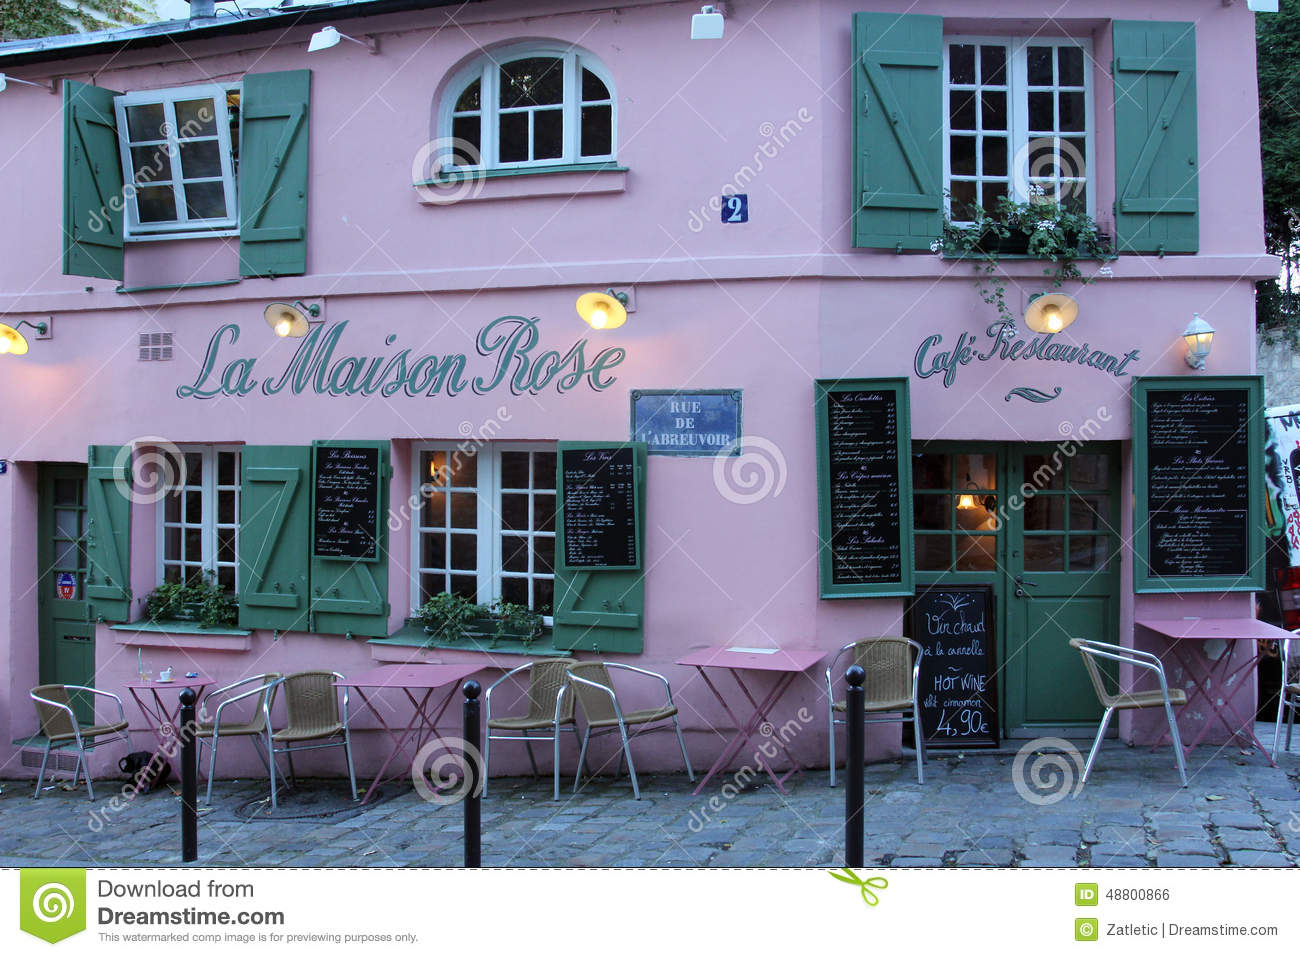 La maison rose restaurant on montmartre in paris editorial for Restaurant miroir montmartre